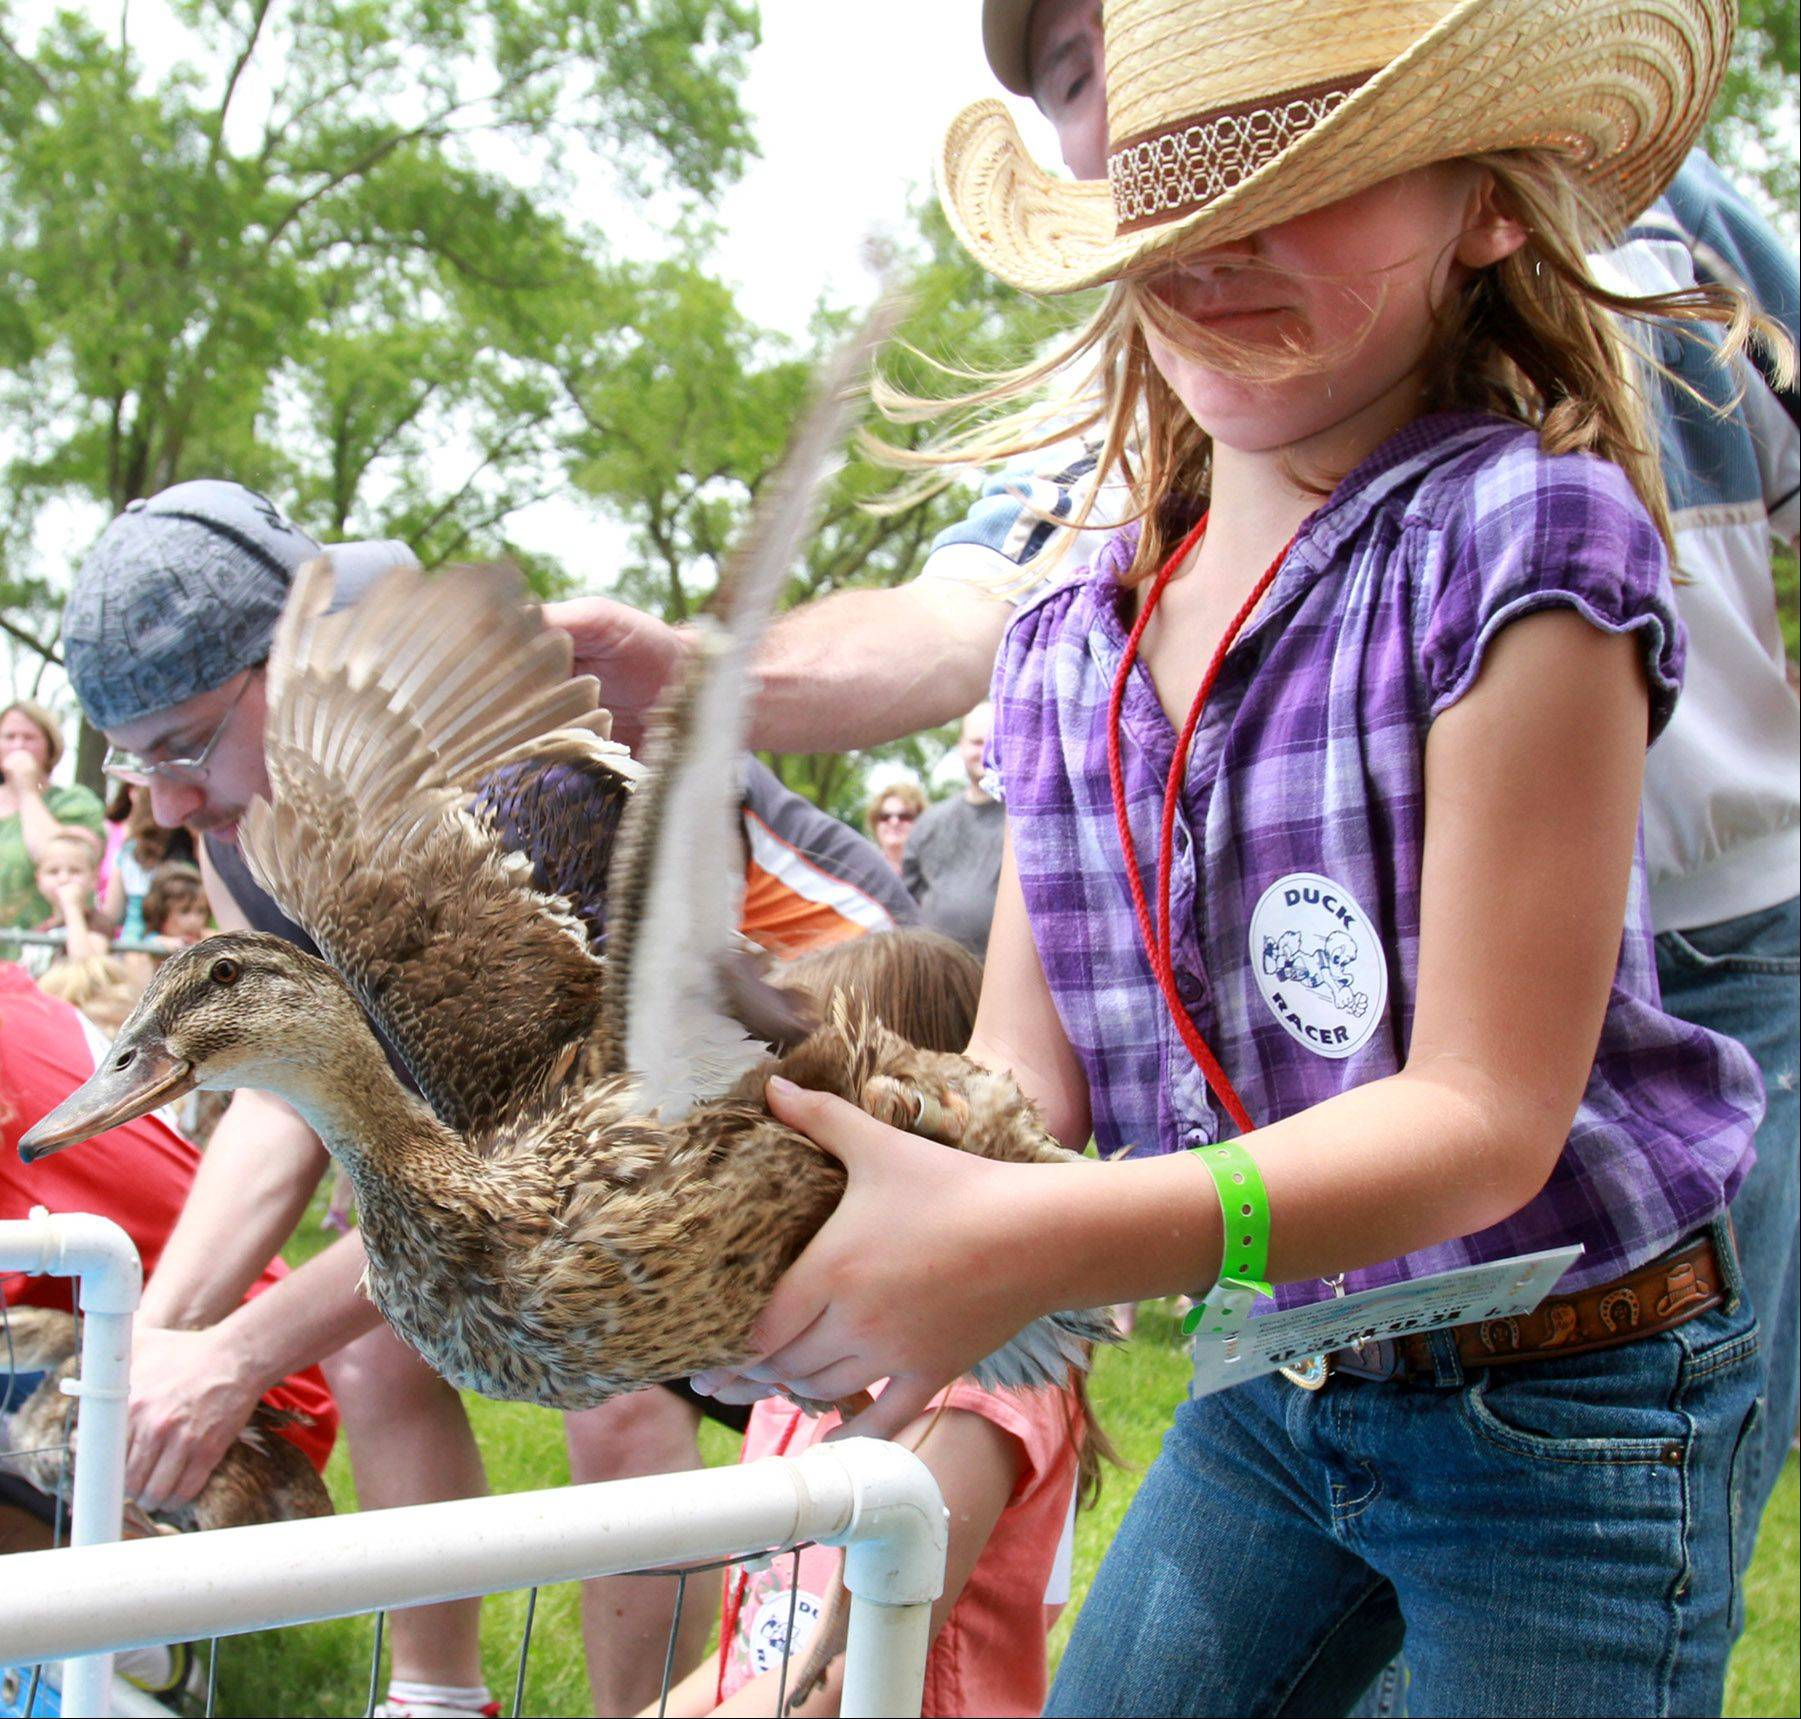 Jocelyn Miller, 8, of Lakewood, has a hard time holding onto her duck, which did break free, at the live duck races at Little Boots Rodeo in Elk Grove Village on Saturday, June 25th.